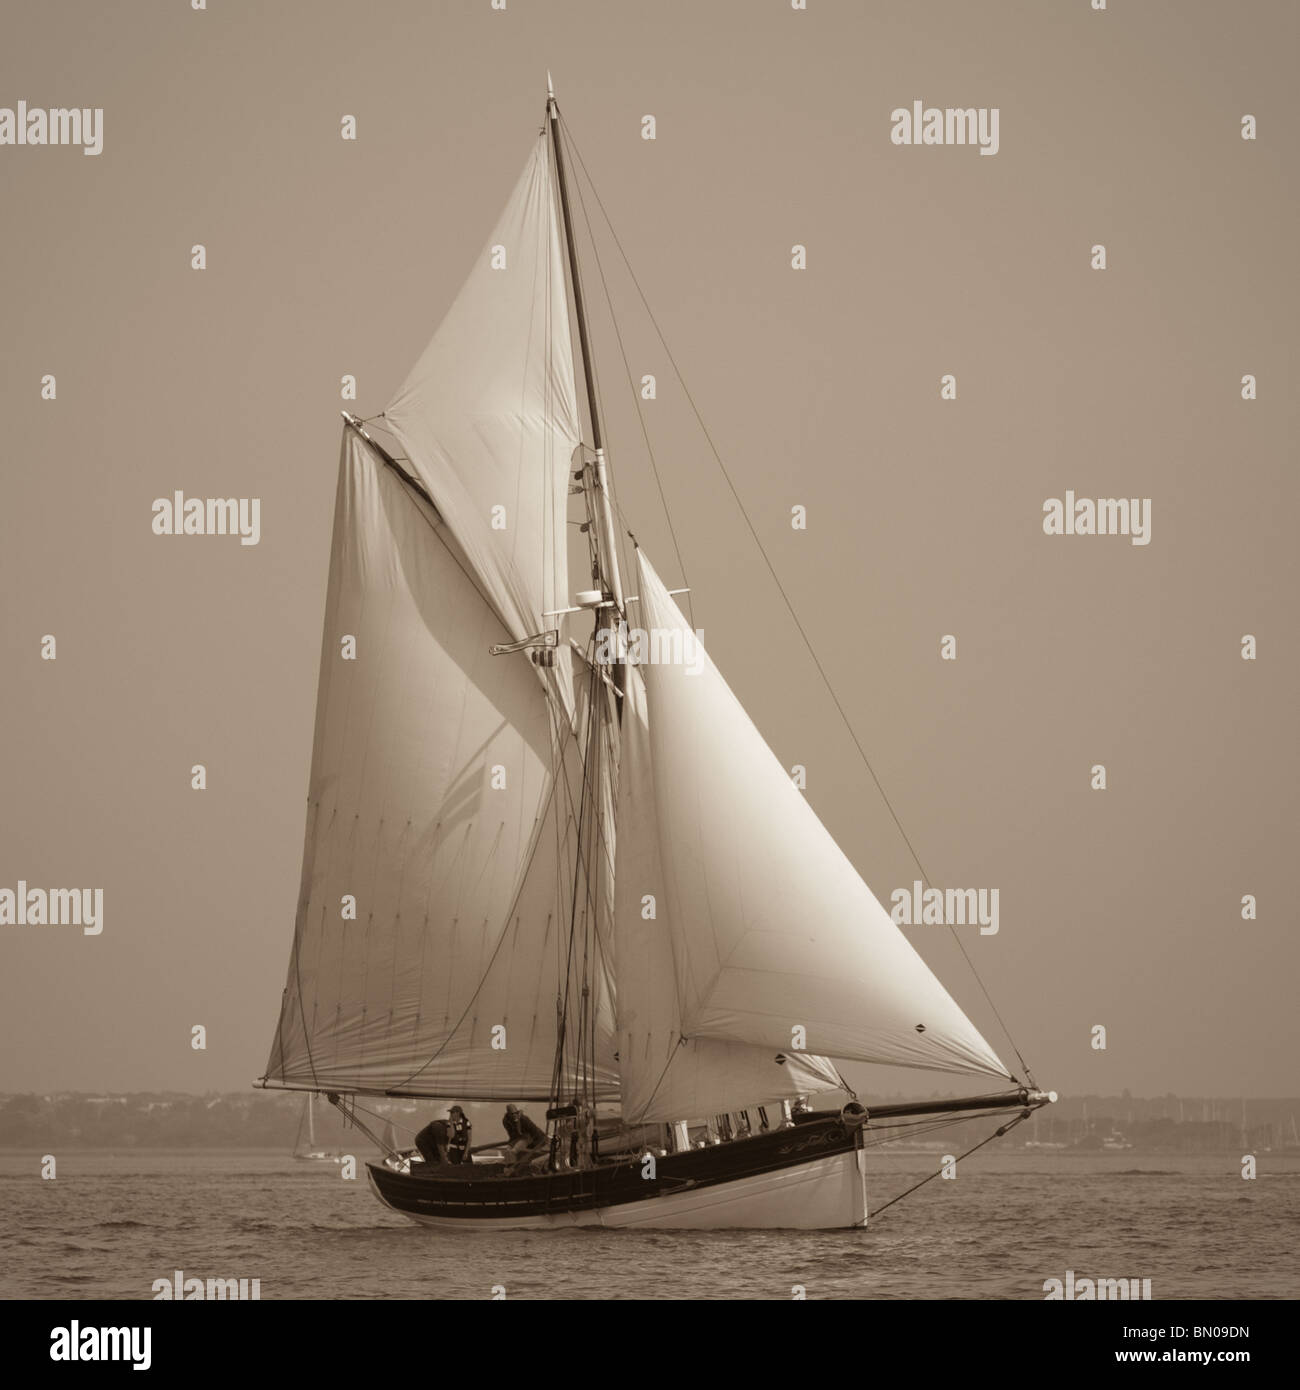 An old gaff rigged sailing boat in the Solent - Stock Image